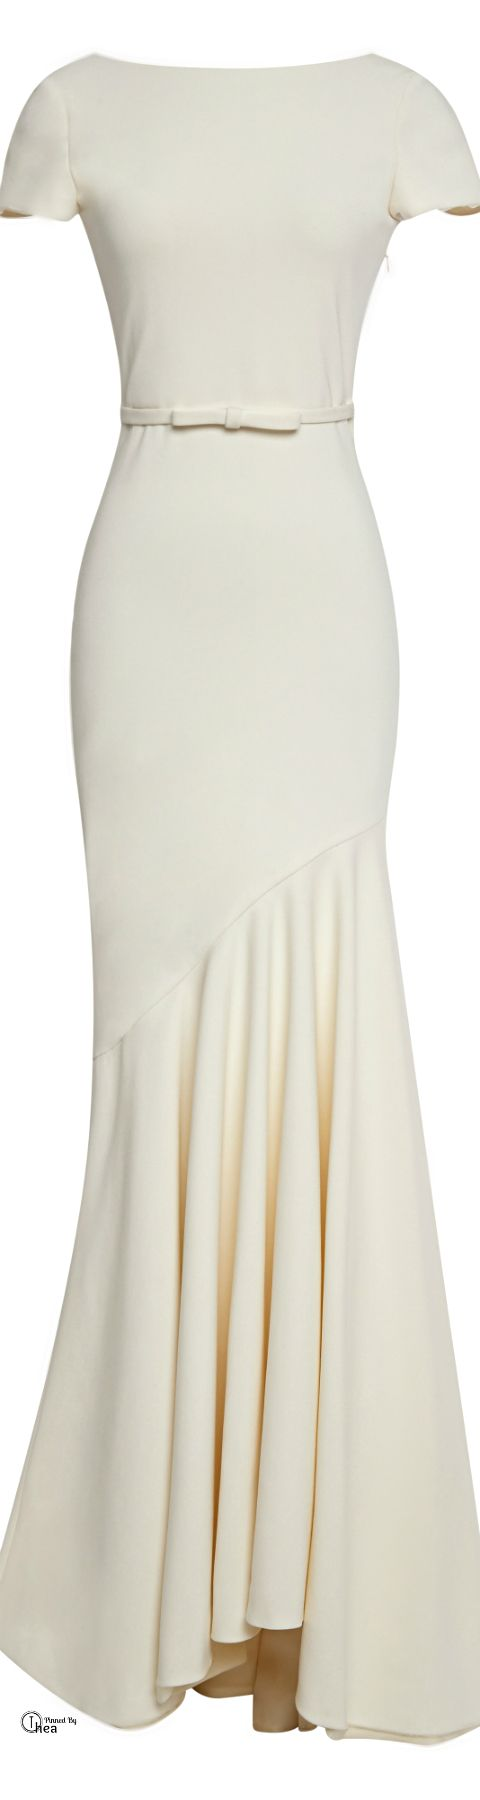 Katie Ermilio ● FW 2014, Scoop-Back Gown-I would wear this to a wedding rehearsal dinner!